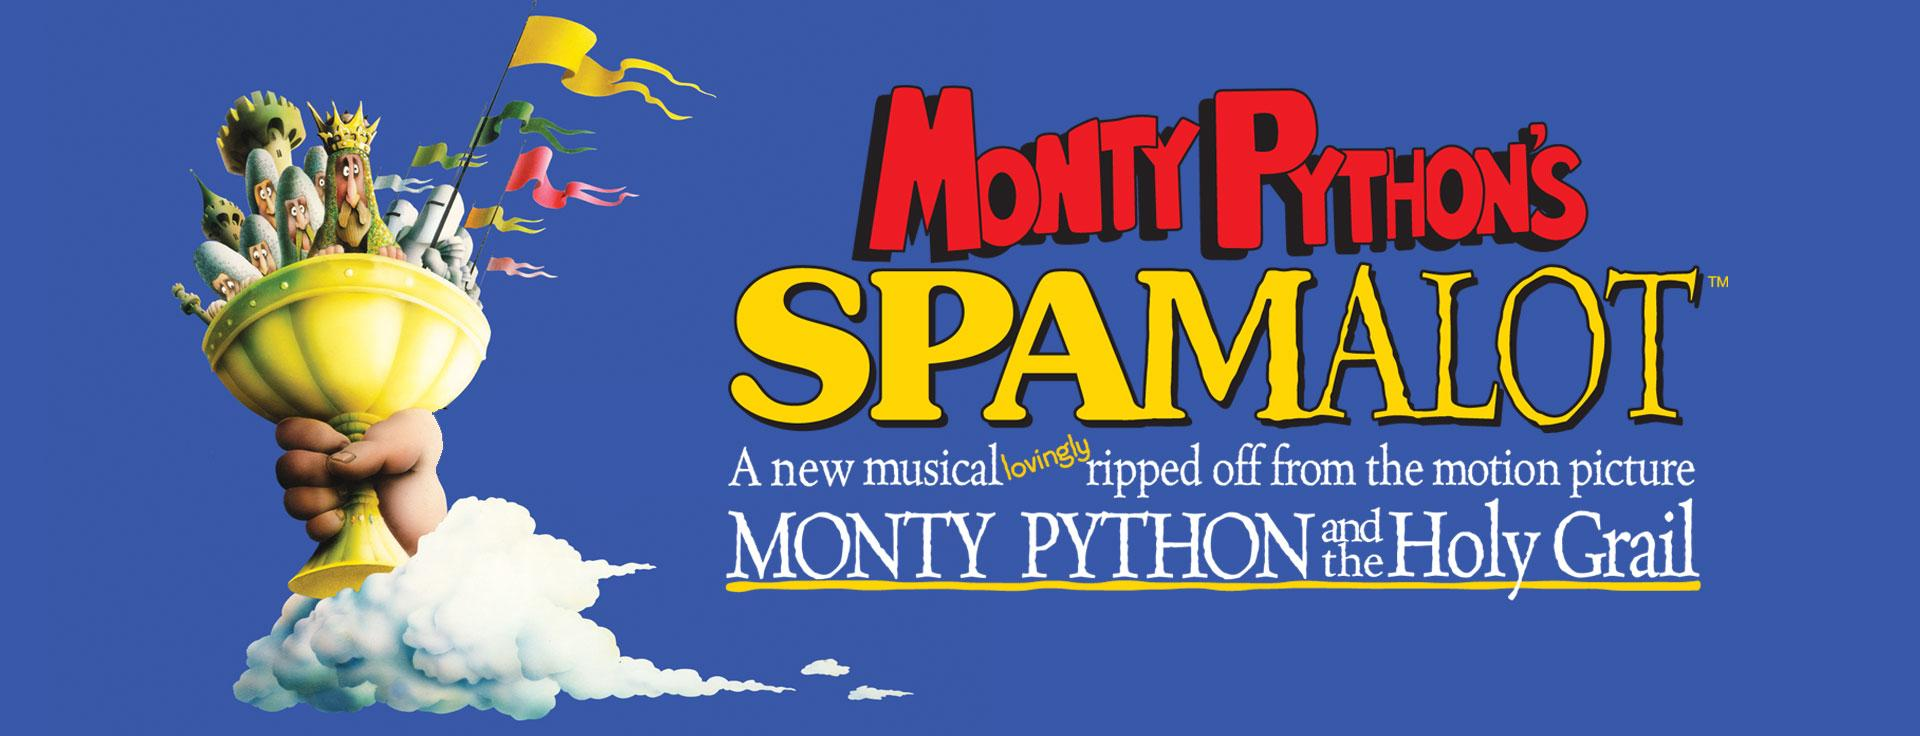 Monty Phythons Spamalot Logo A new Musical Lovingly ripped off from the motion picture Monty Python and the Holy Grail